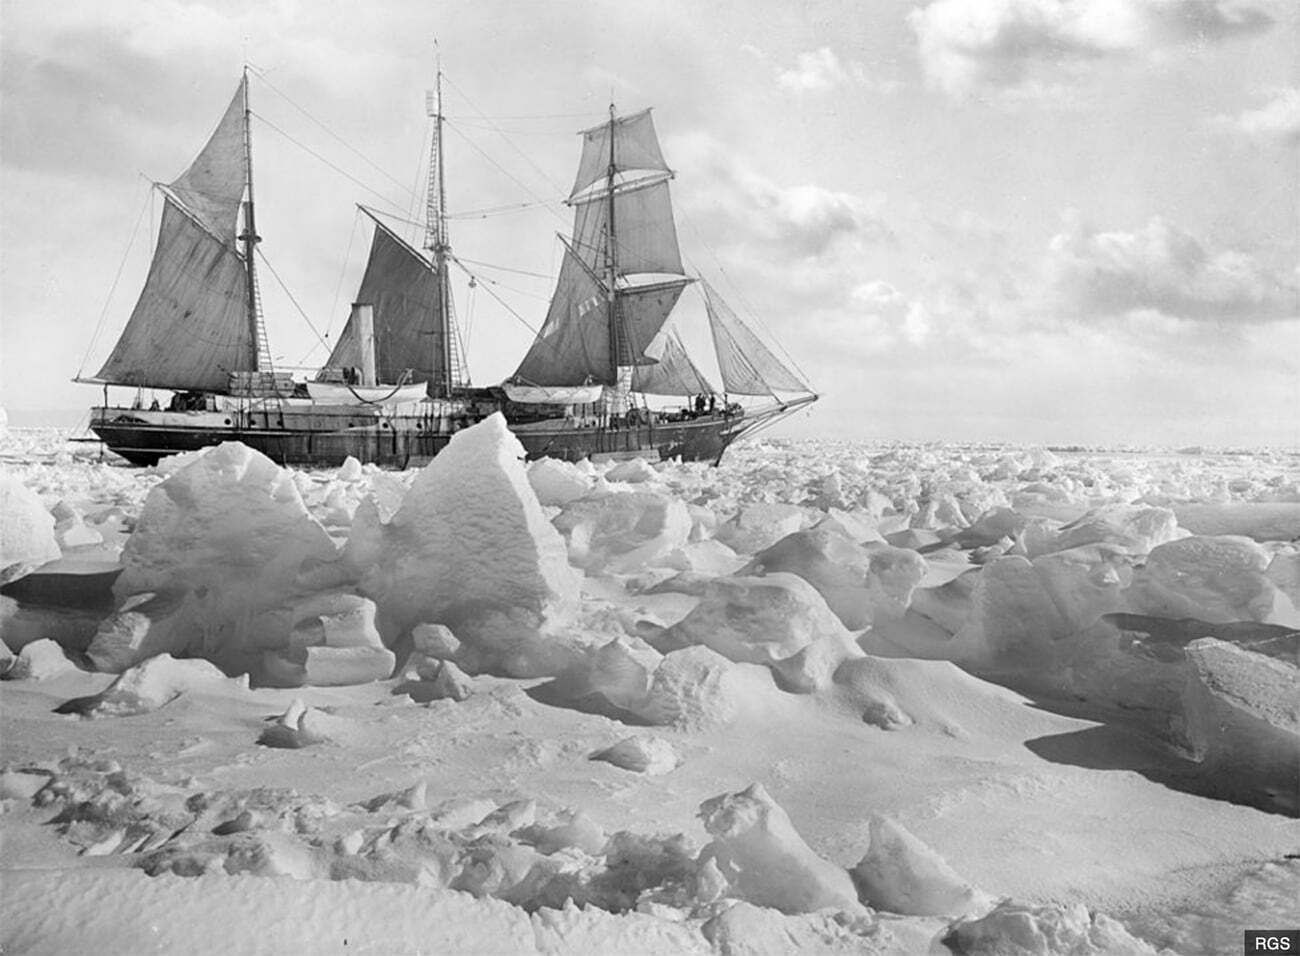 imagem do navio Endurance, de Ernest Shackleton, preso no gelo